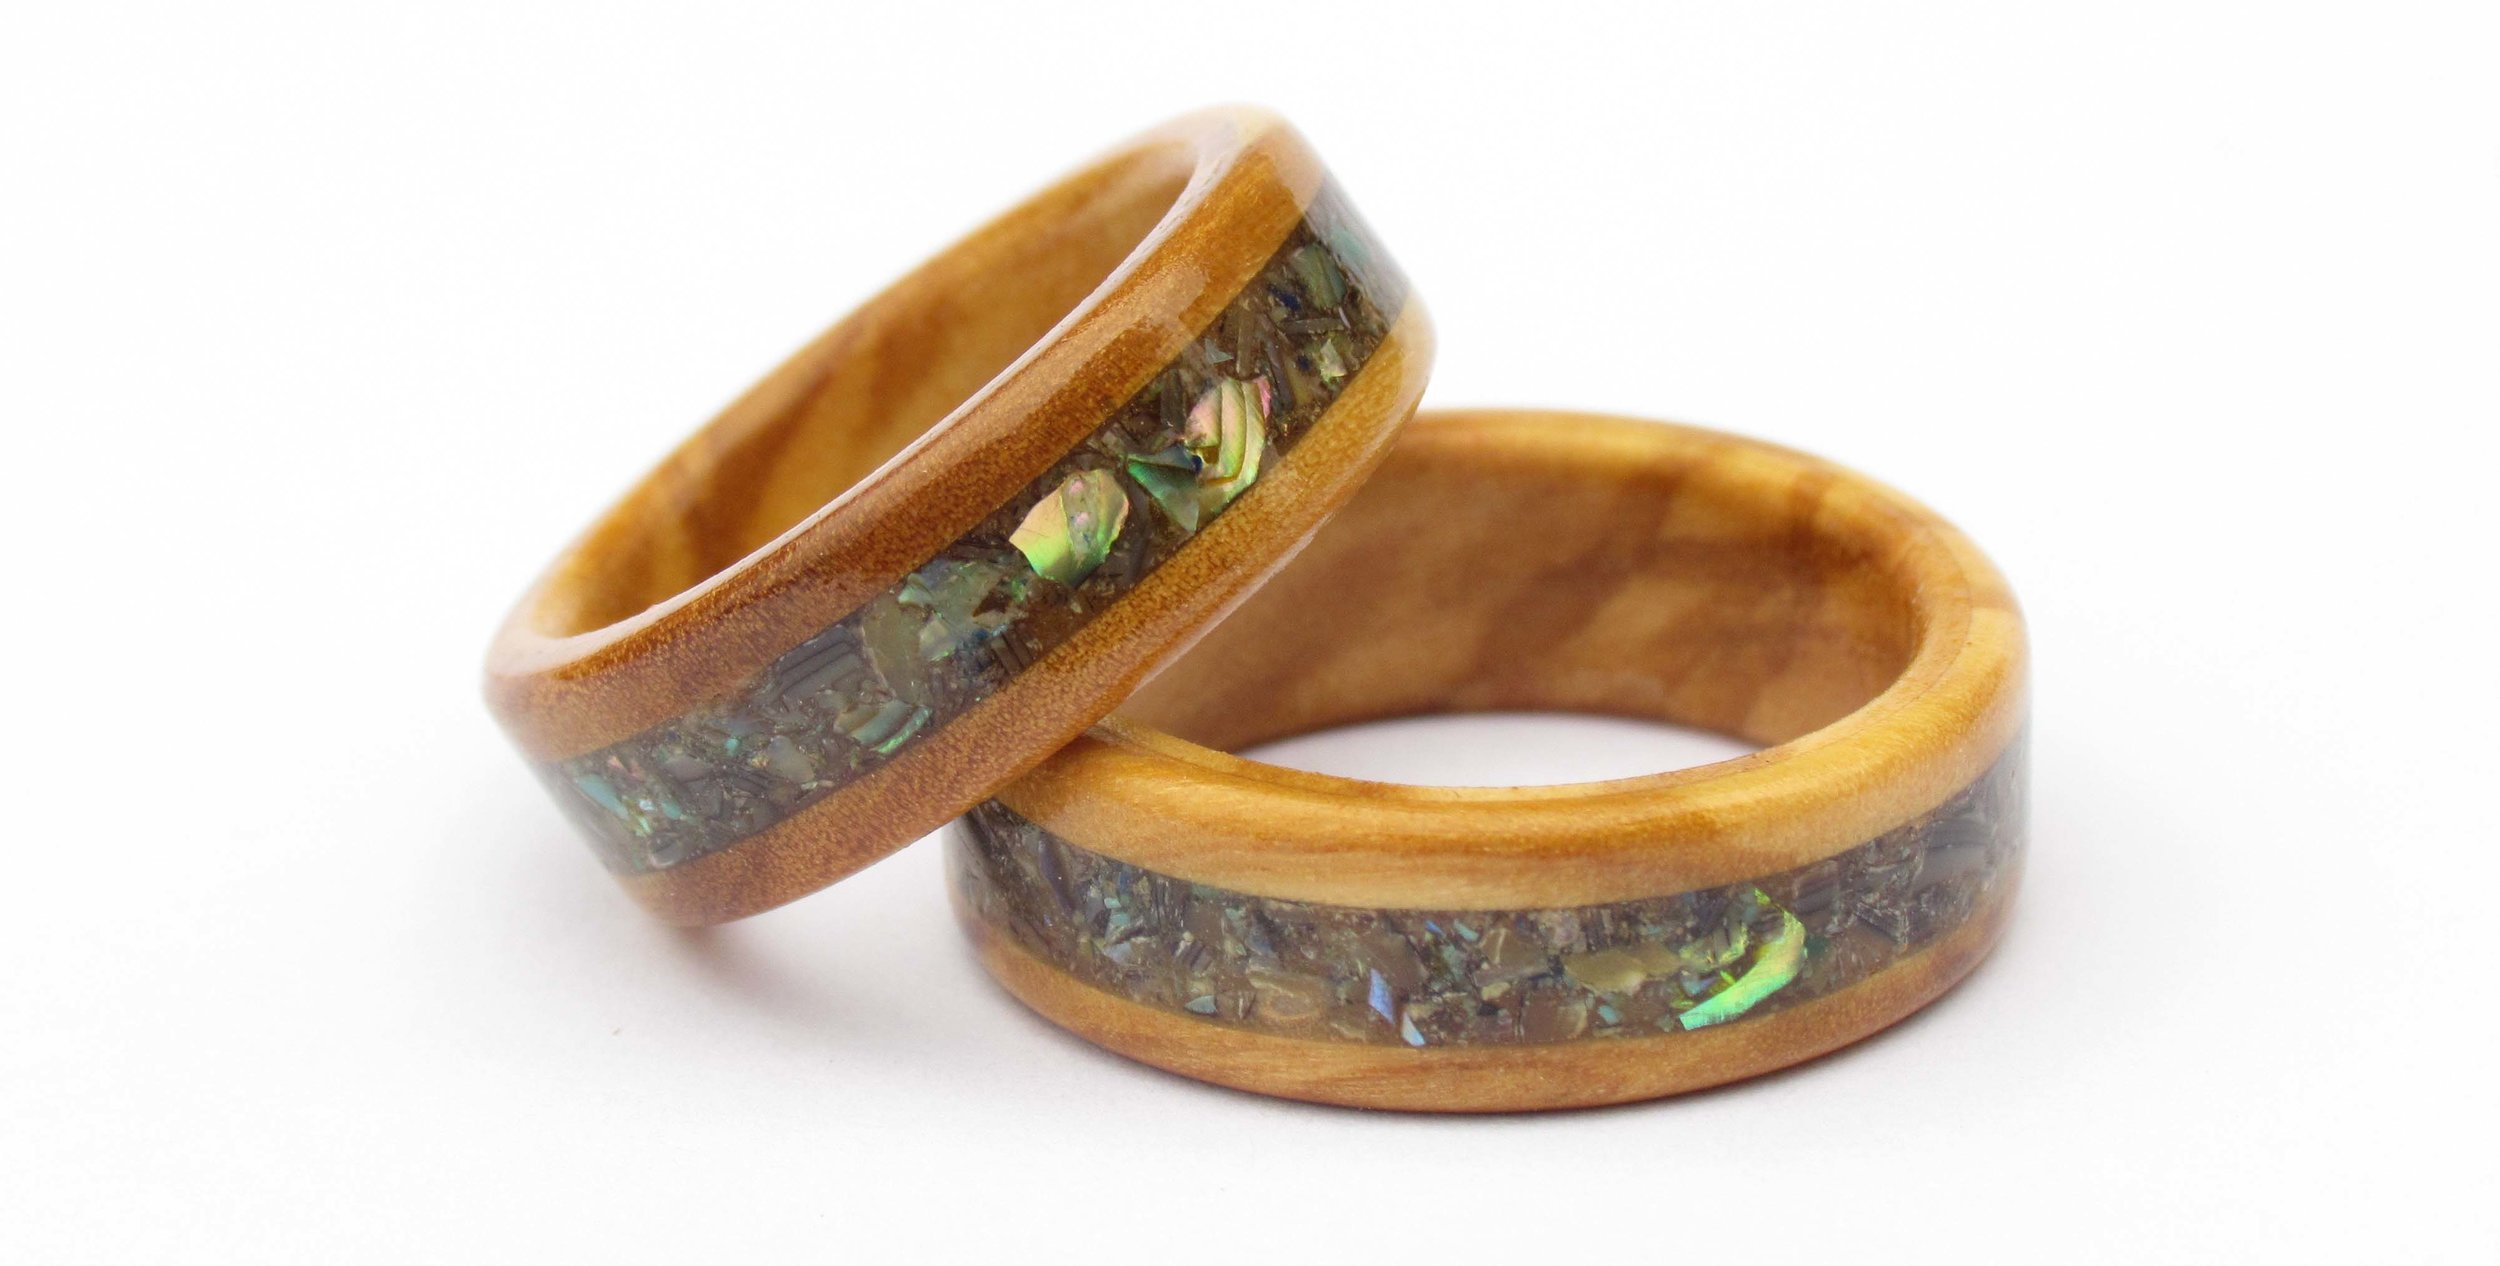 Our Most Popular Wooden Wedding Ring - Combined eco elements from the ocean and land make this wooden ring the perfect choice for those wishing to connect with nature.